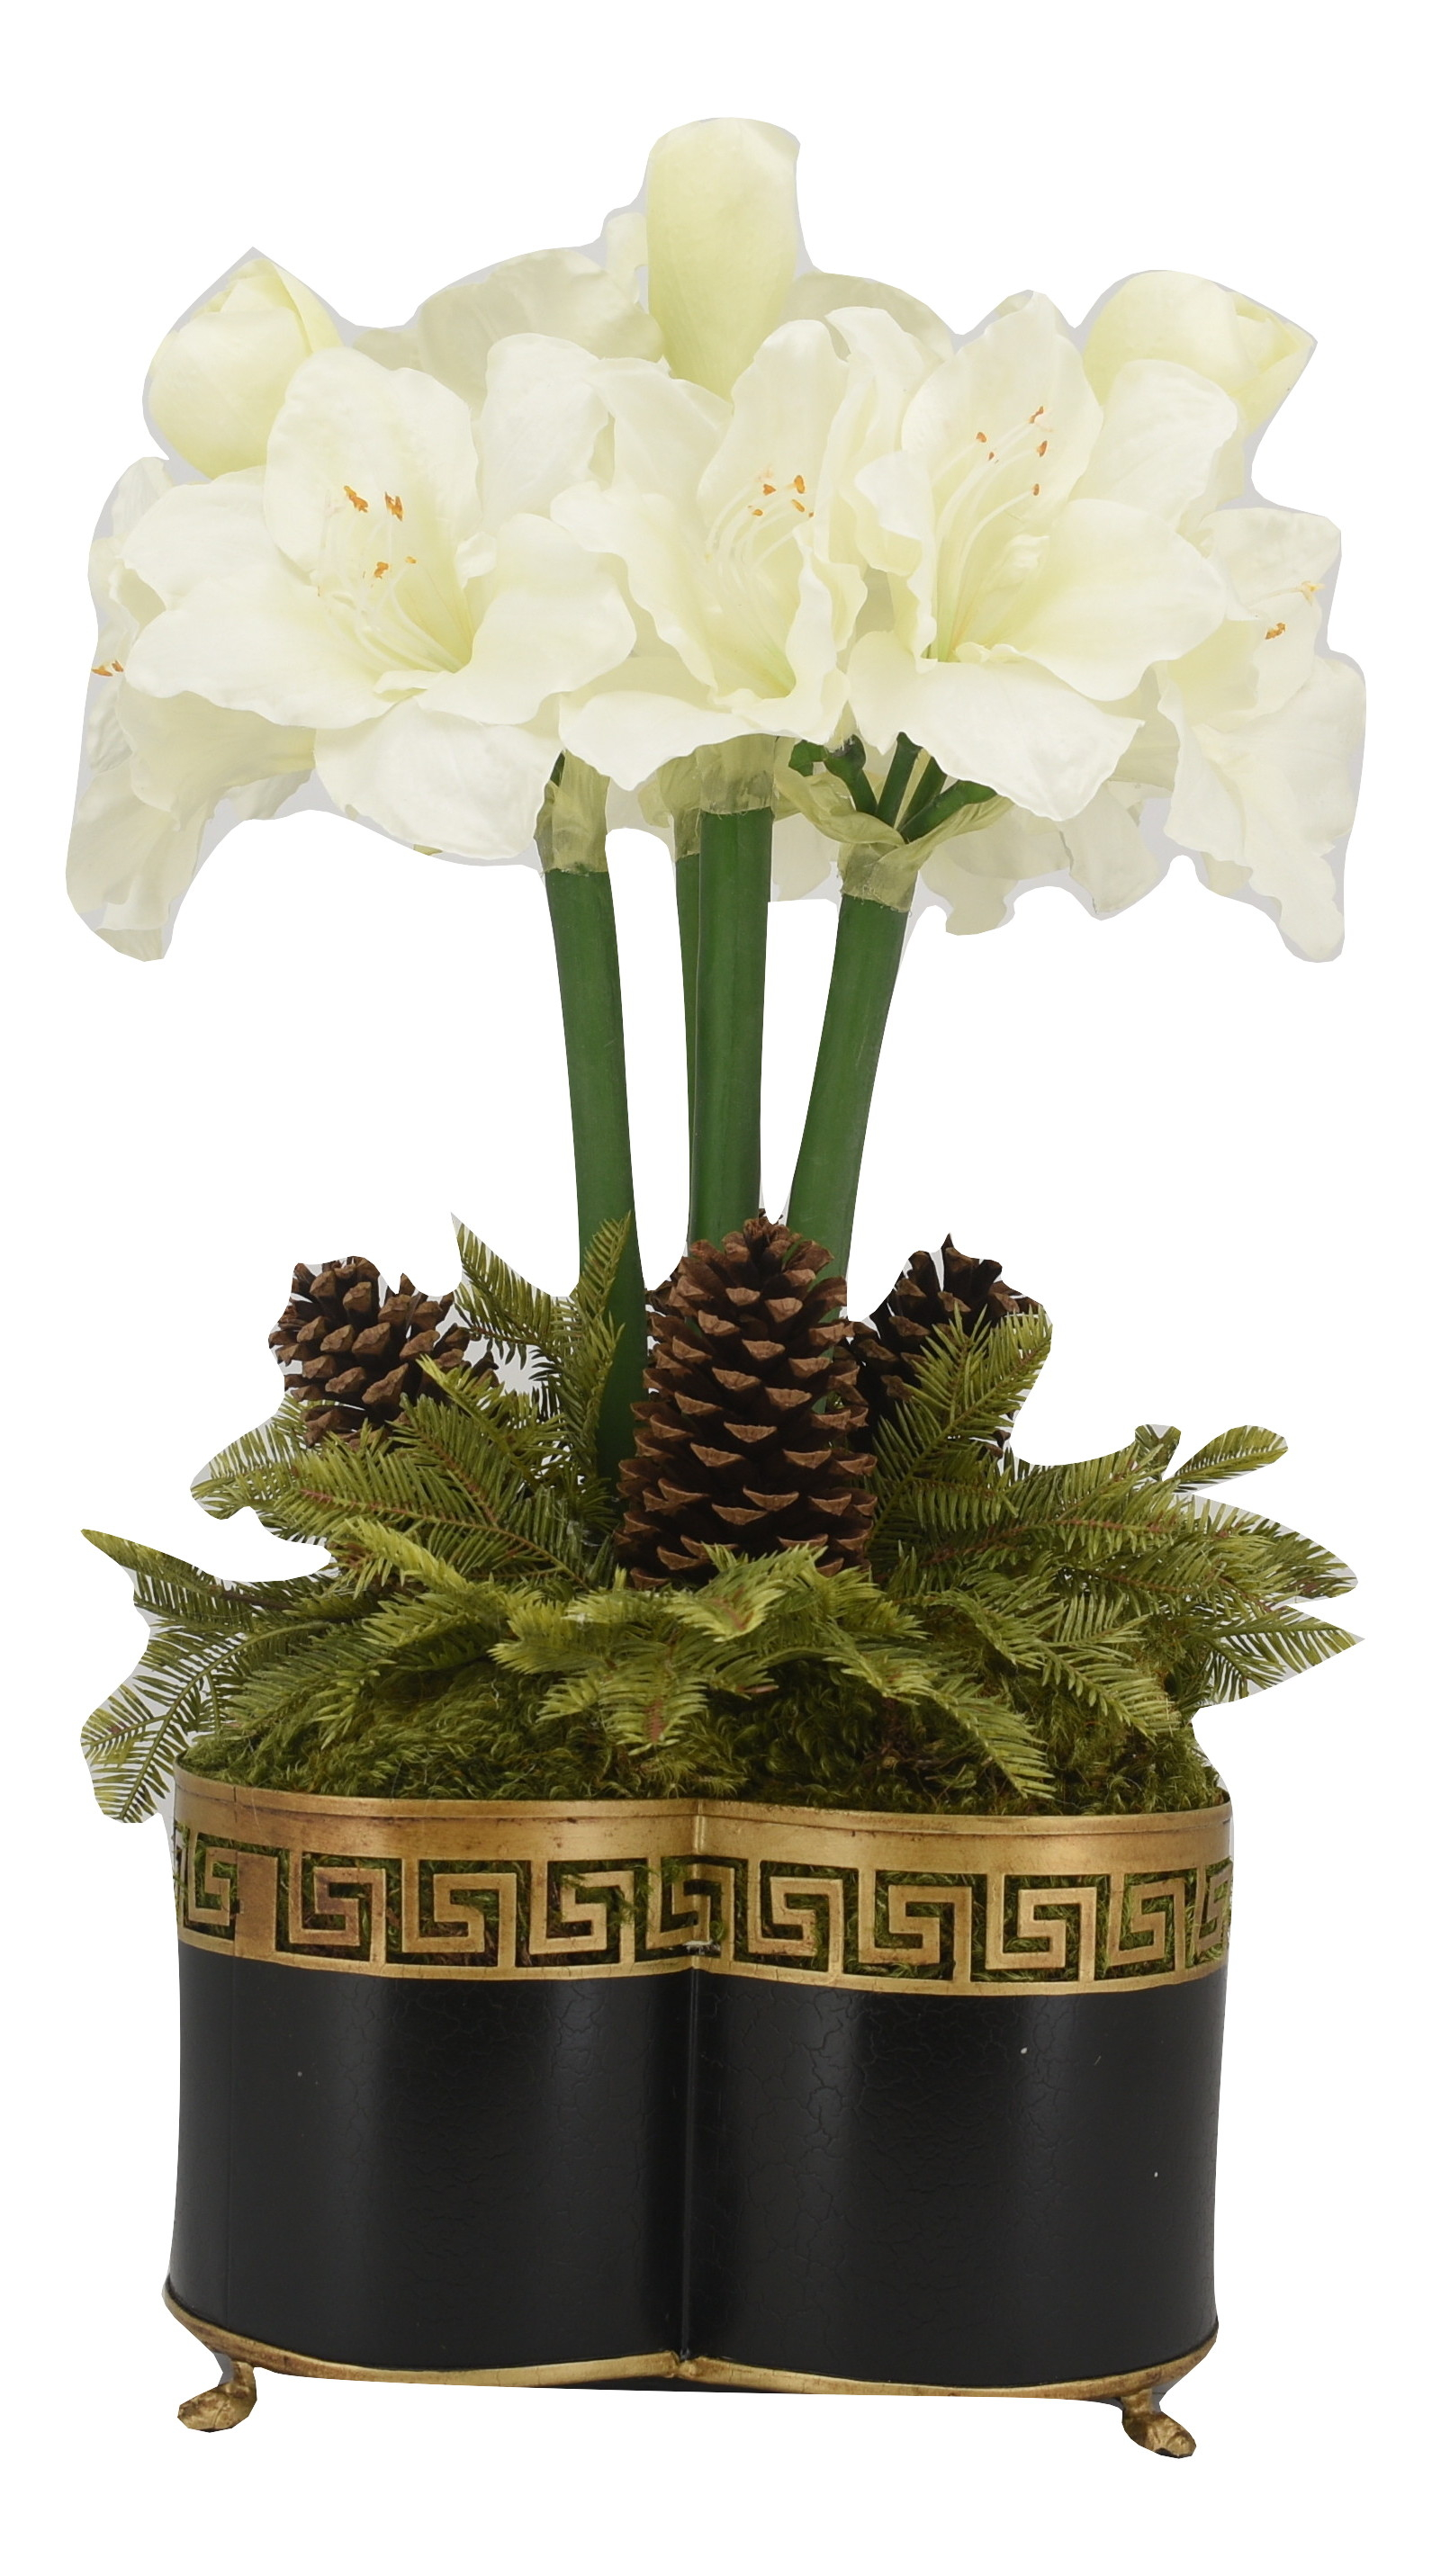 Spectacular four stem white amaryllis in black Greek key quatrefoil planter